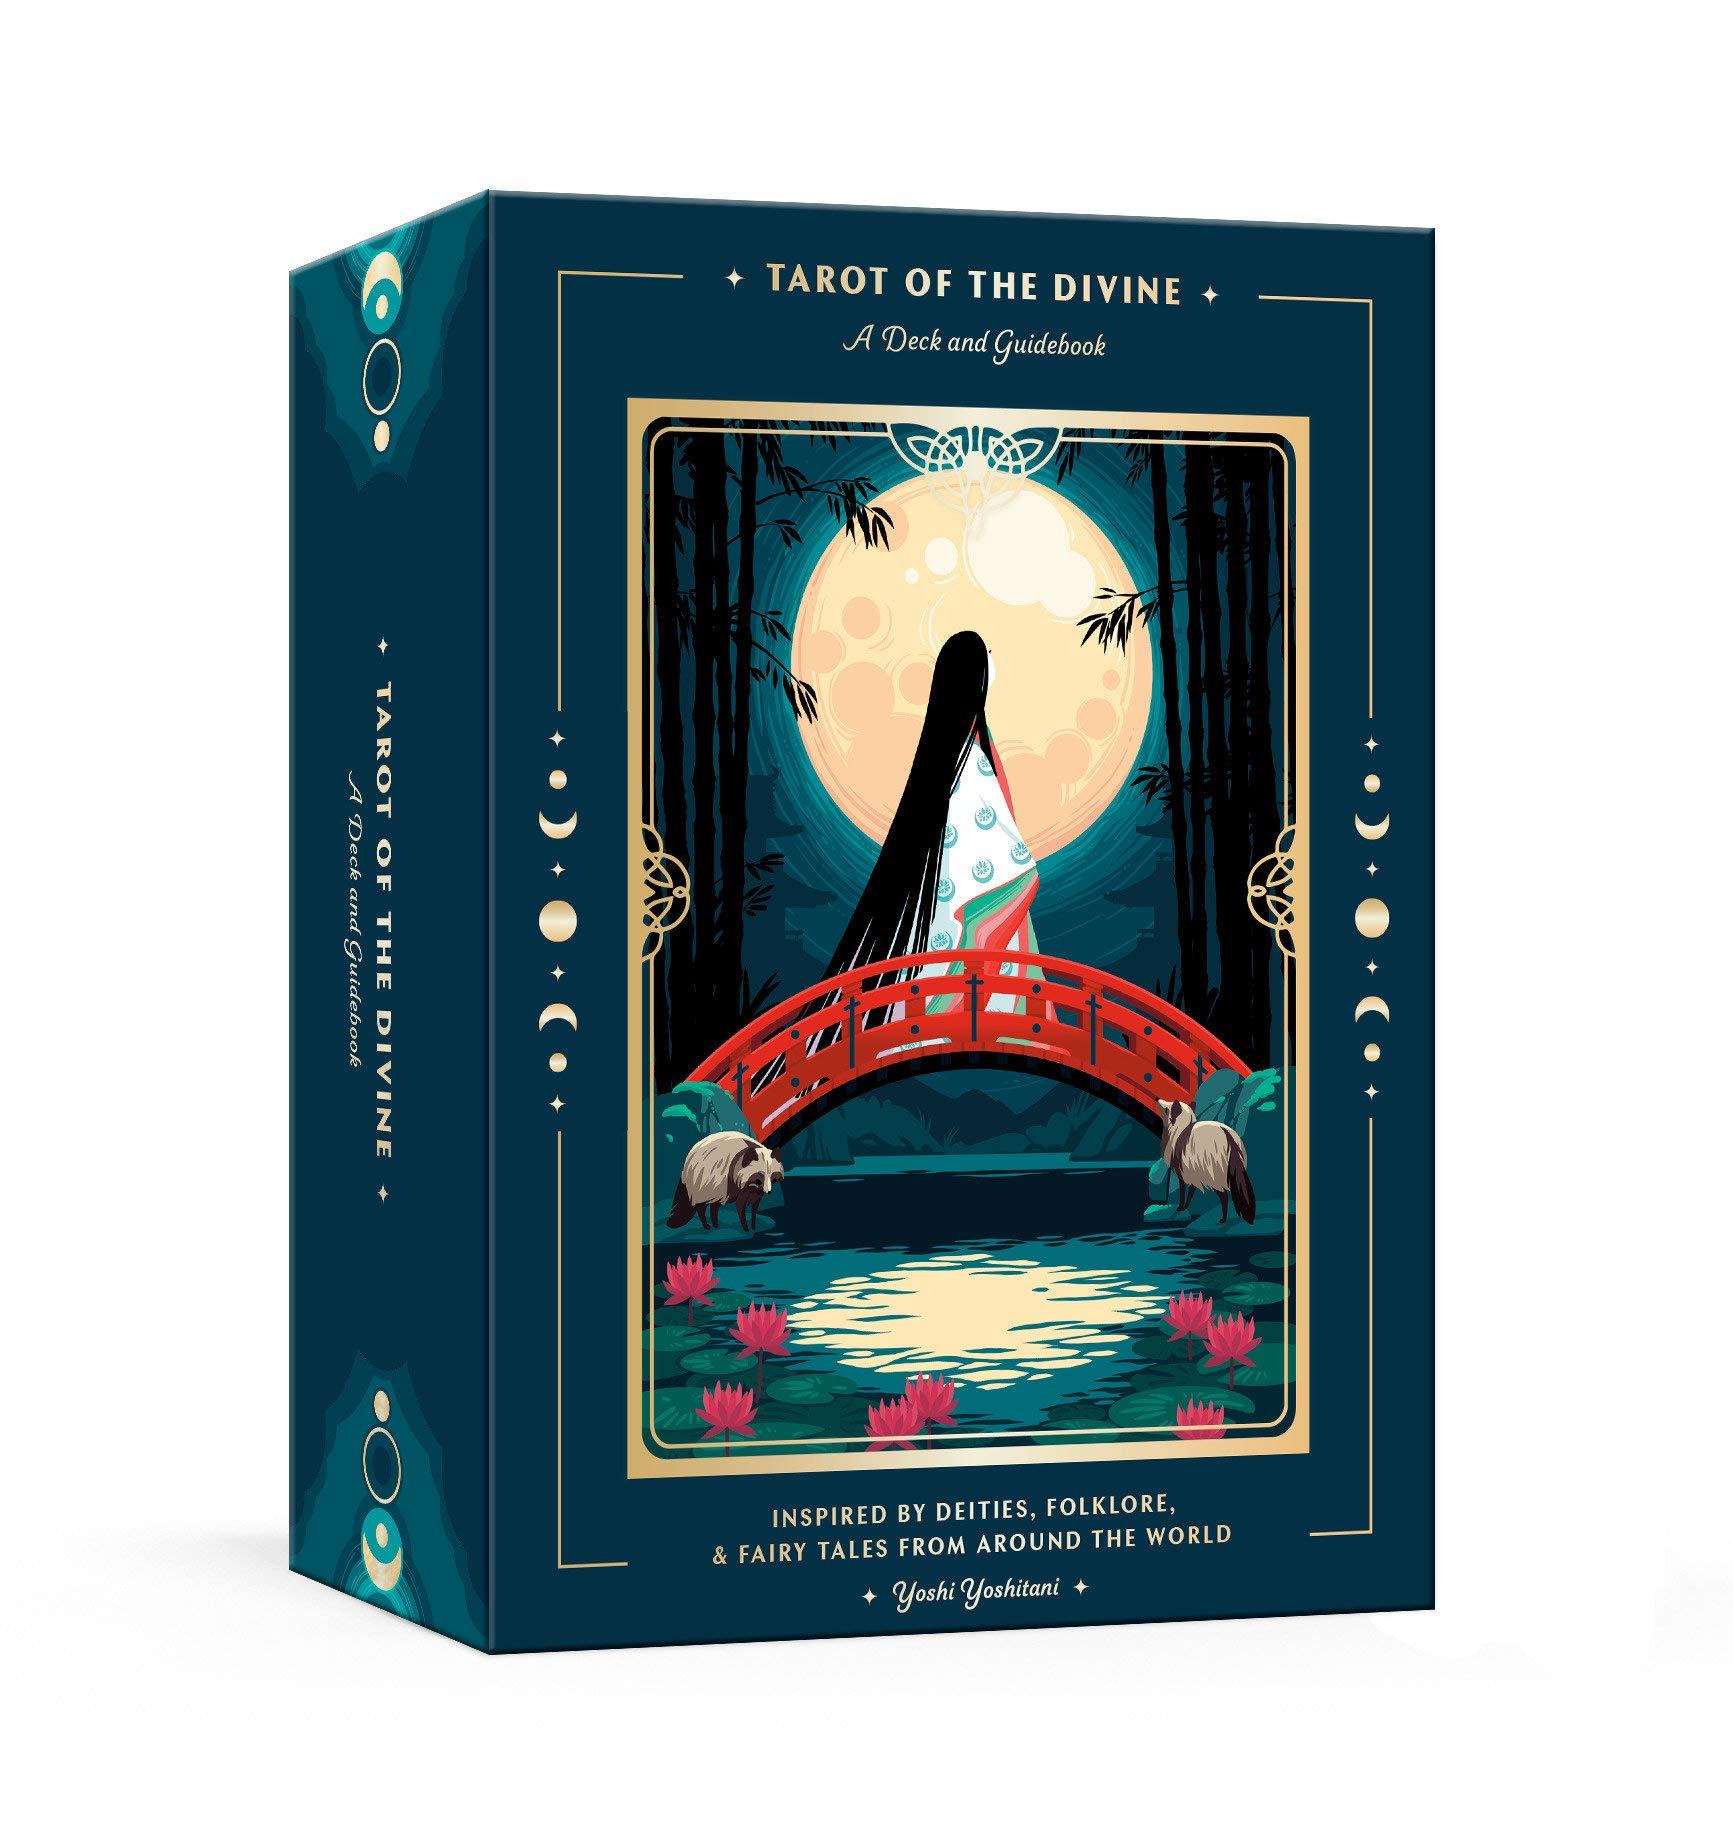 Buy Tarot of the Divine: A Deck and Guidebook Inspired by Deities,  Folklore, and Fairy Tales from Around the World: Tarot Cards Book Online at  Low Prices in India | Tarot of